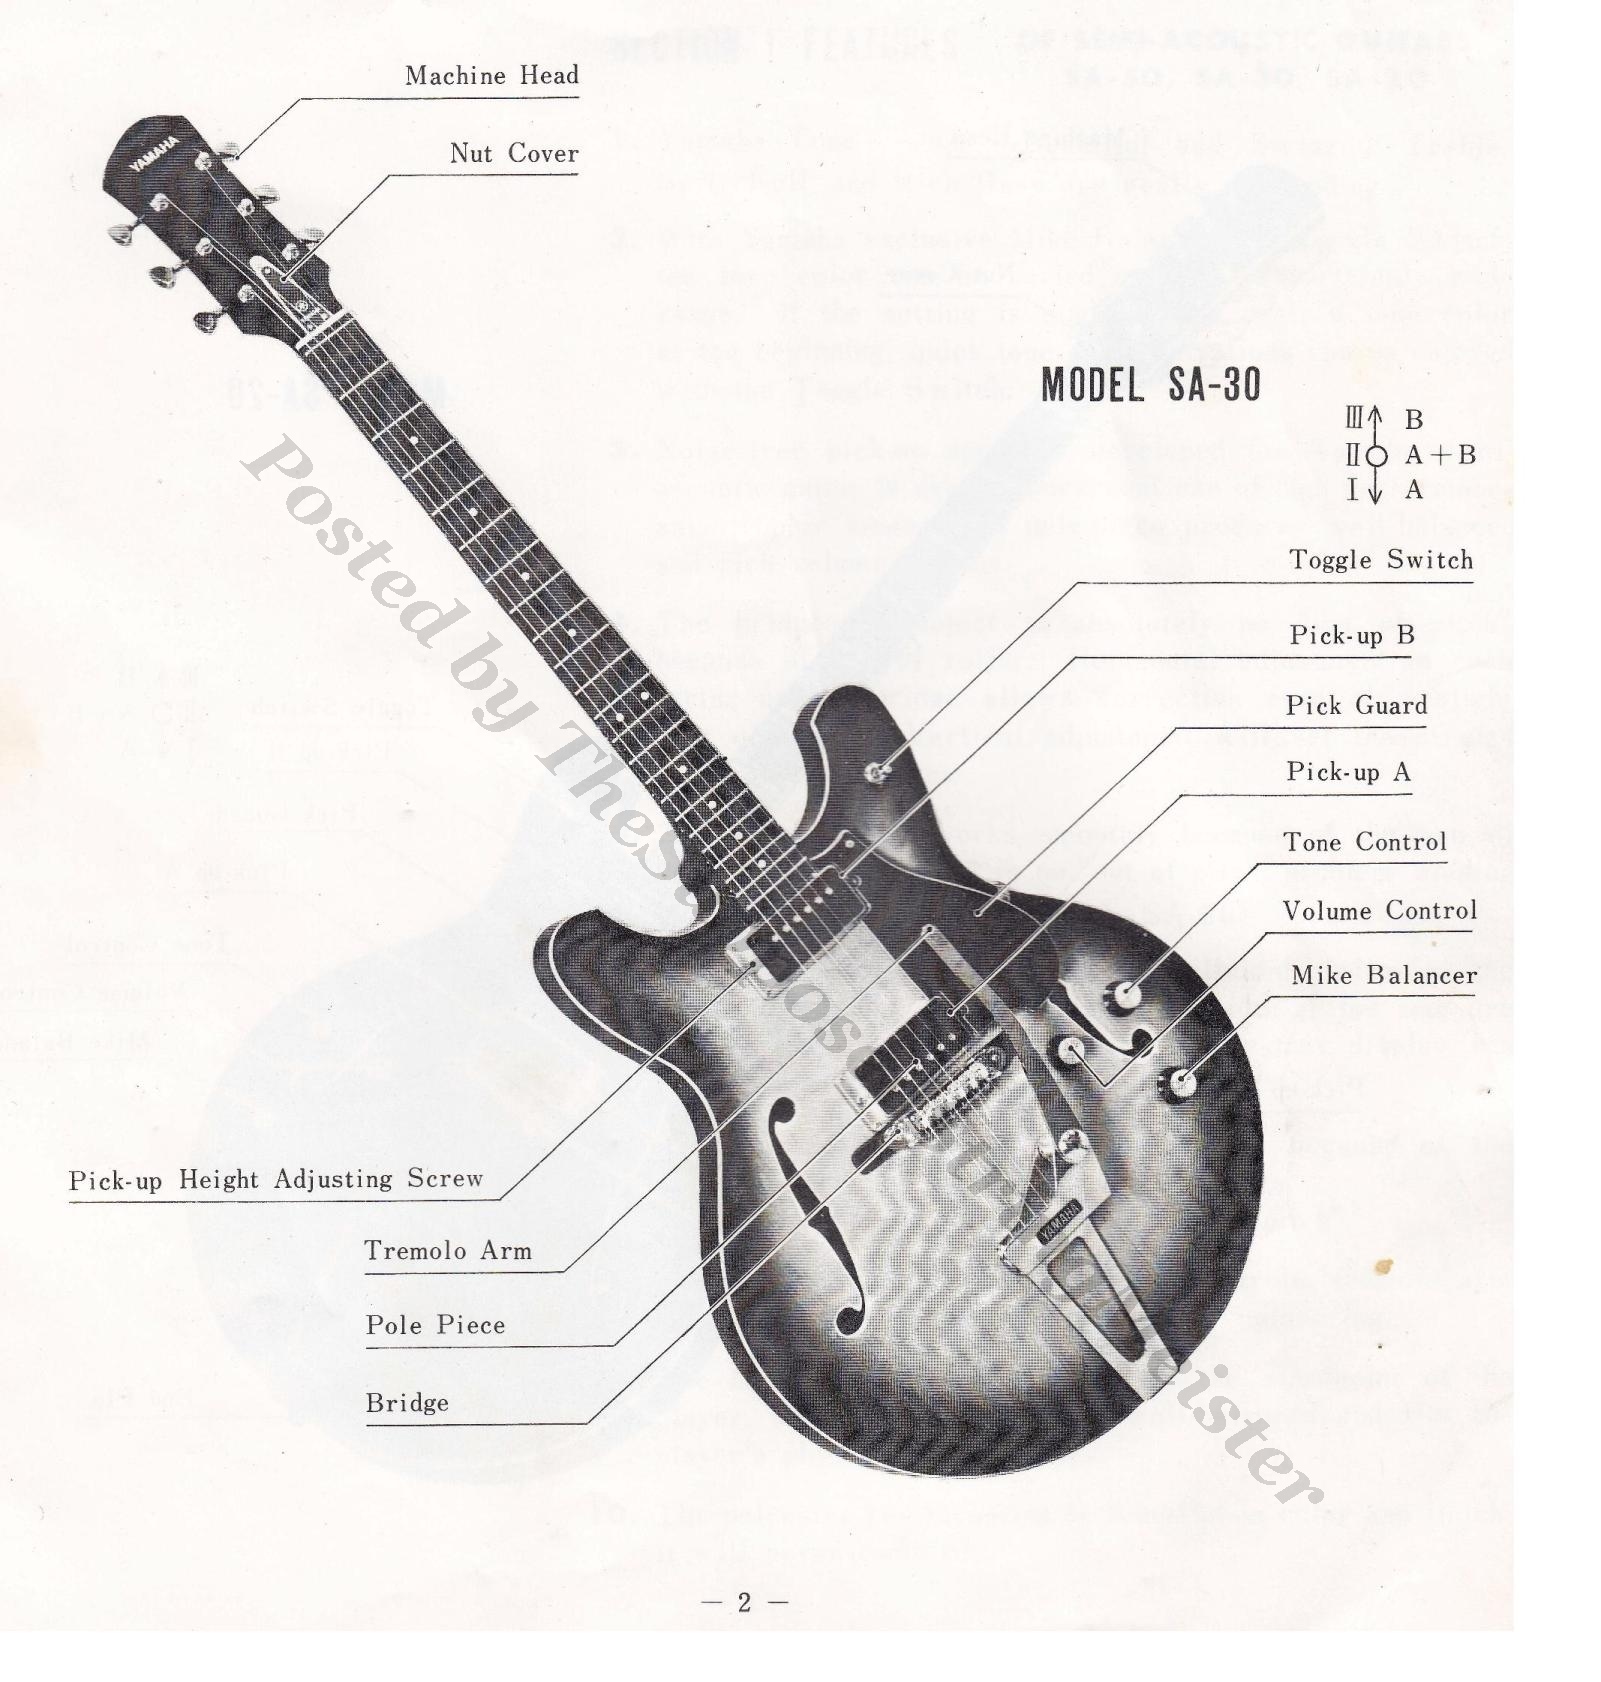 Semi Hollow Body Guitar Wiring Diagrams Acoustic Electric Images Gallery